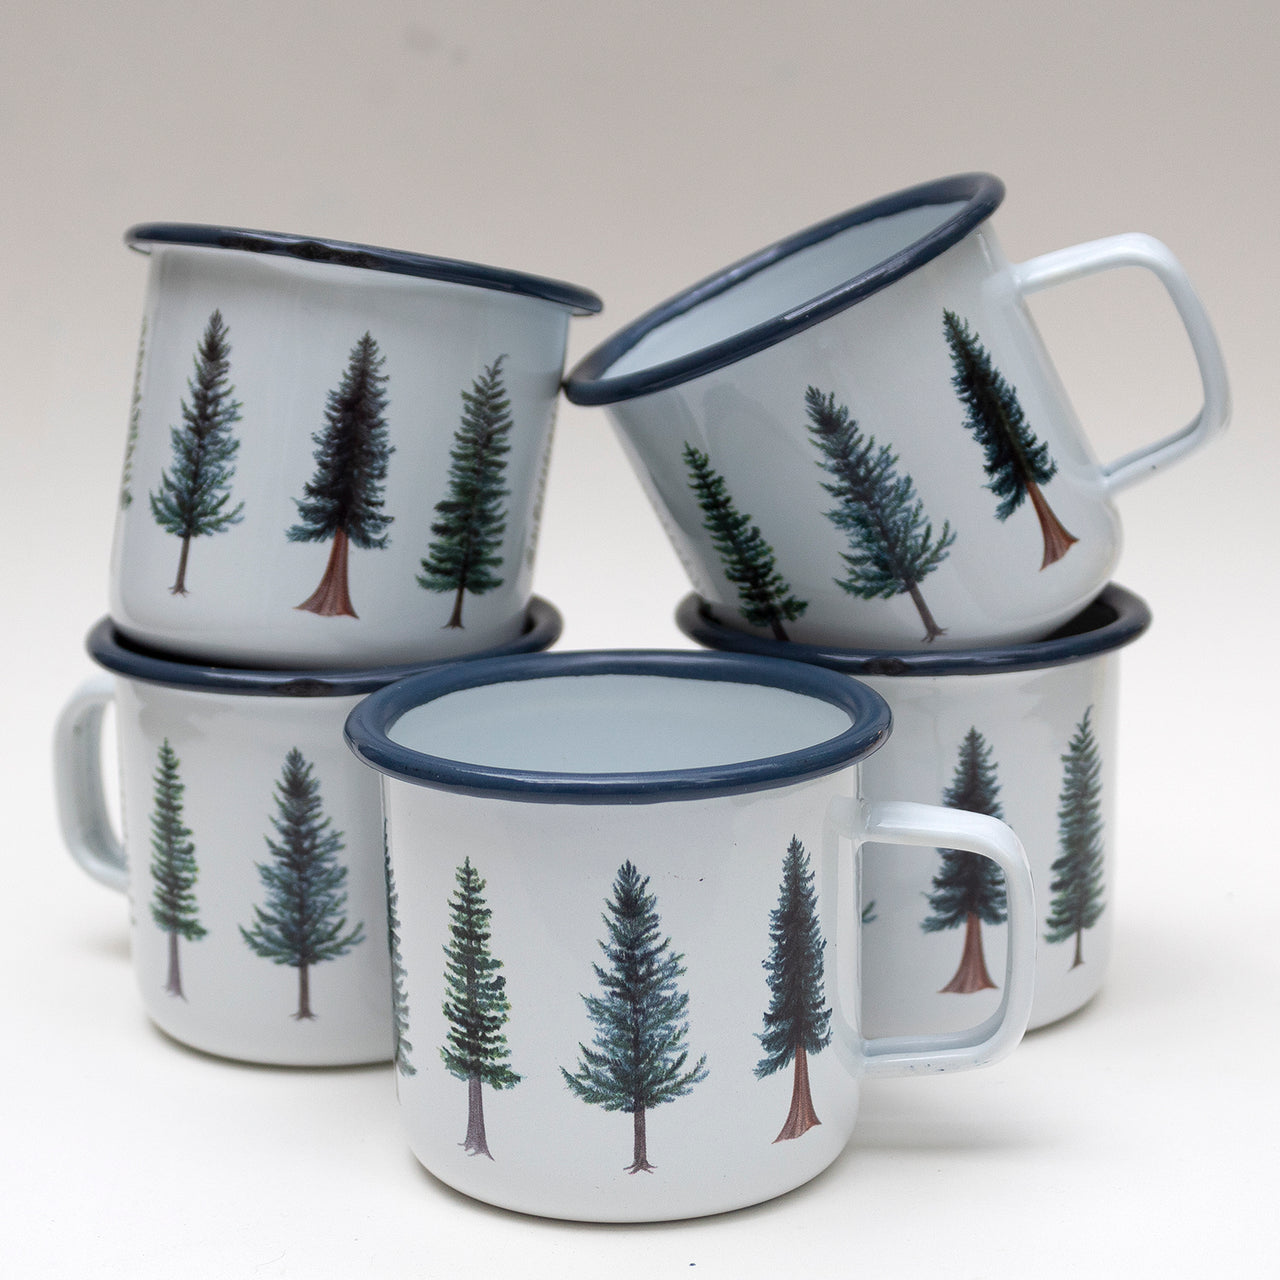 SECONDS SALE: Imperfect Evergreen Trees Enamel Mug